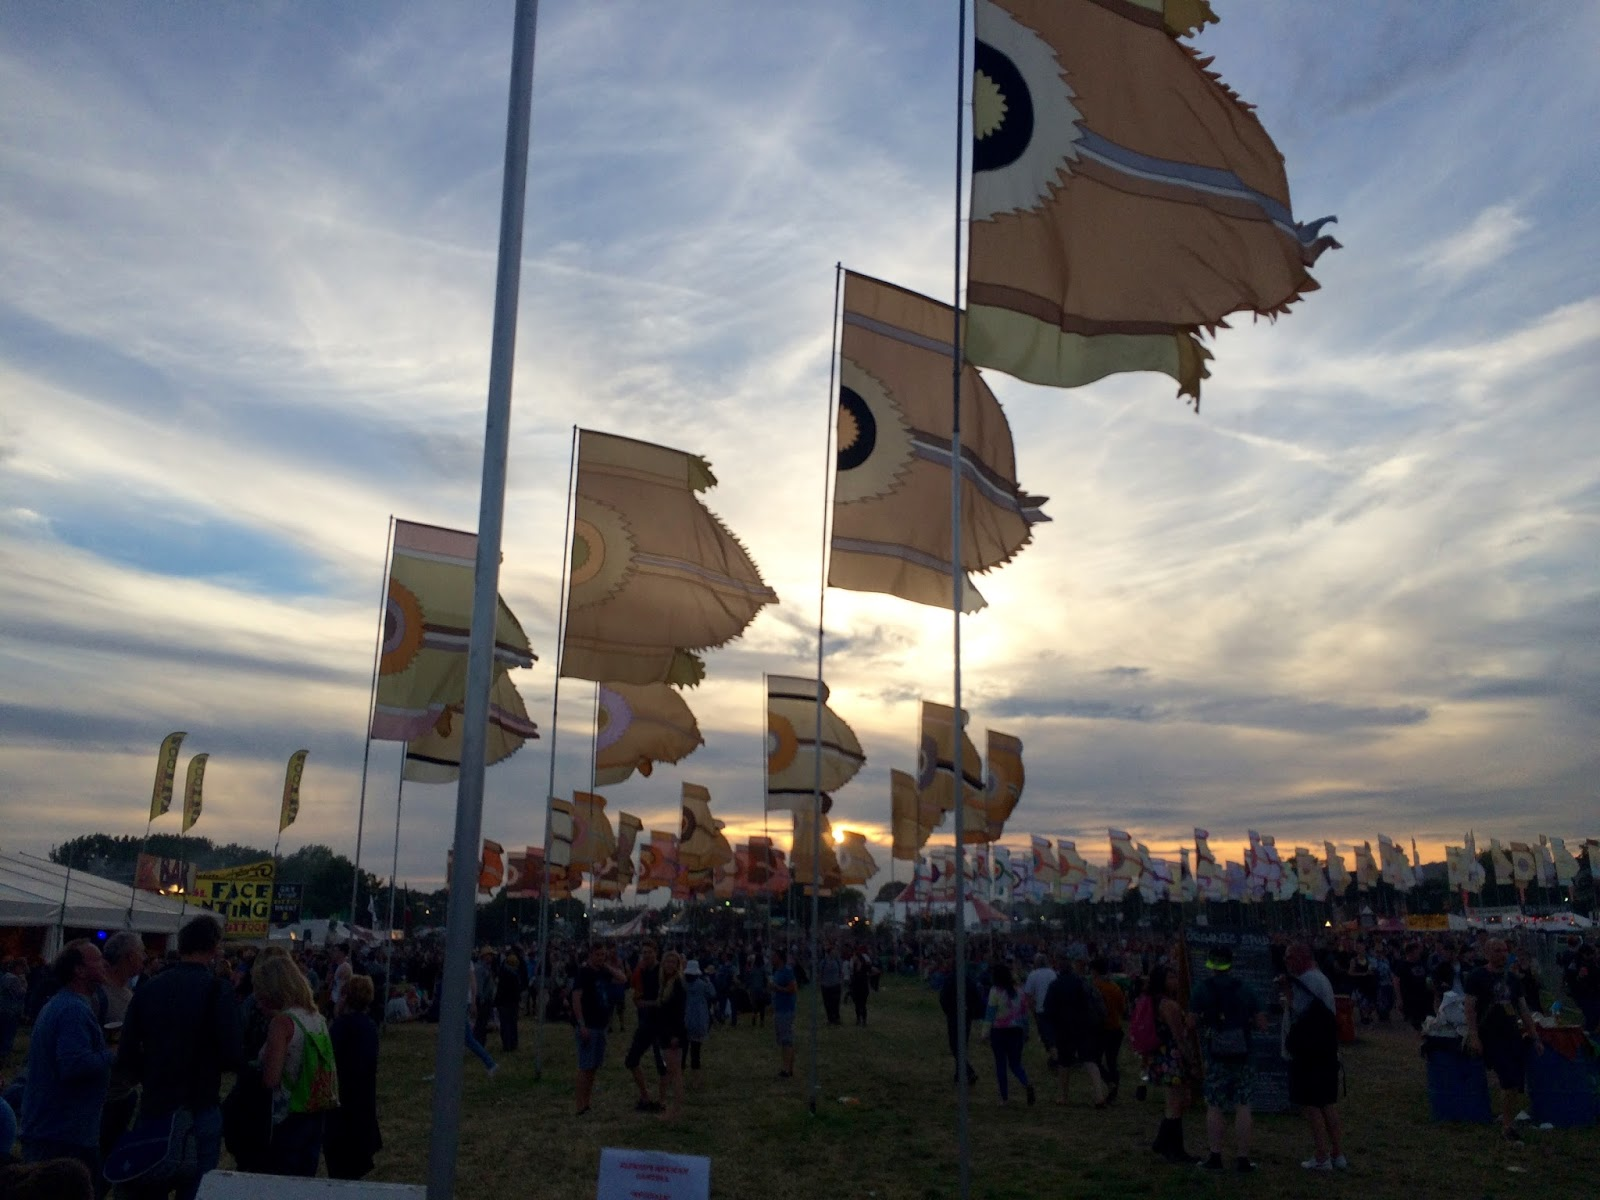 Glastonbury Festival Flags flying in the breeze